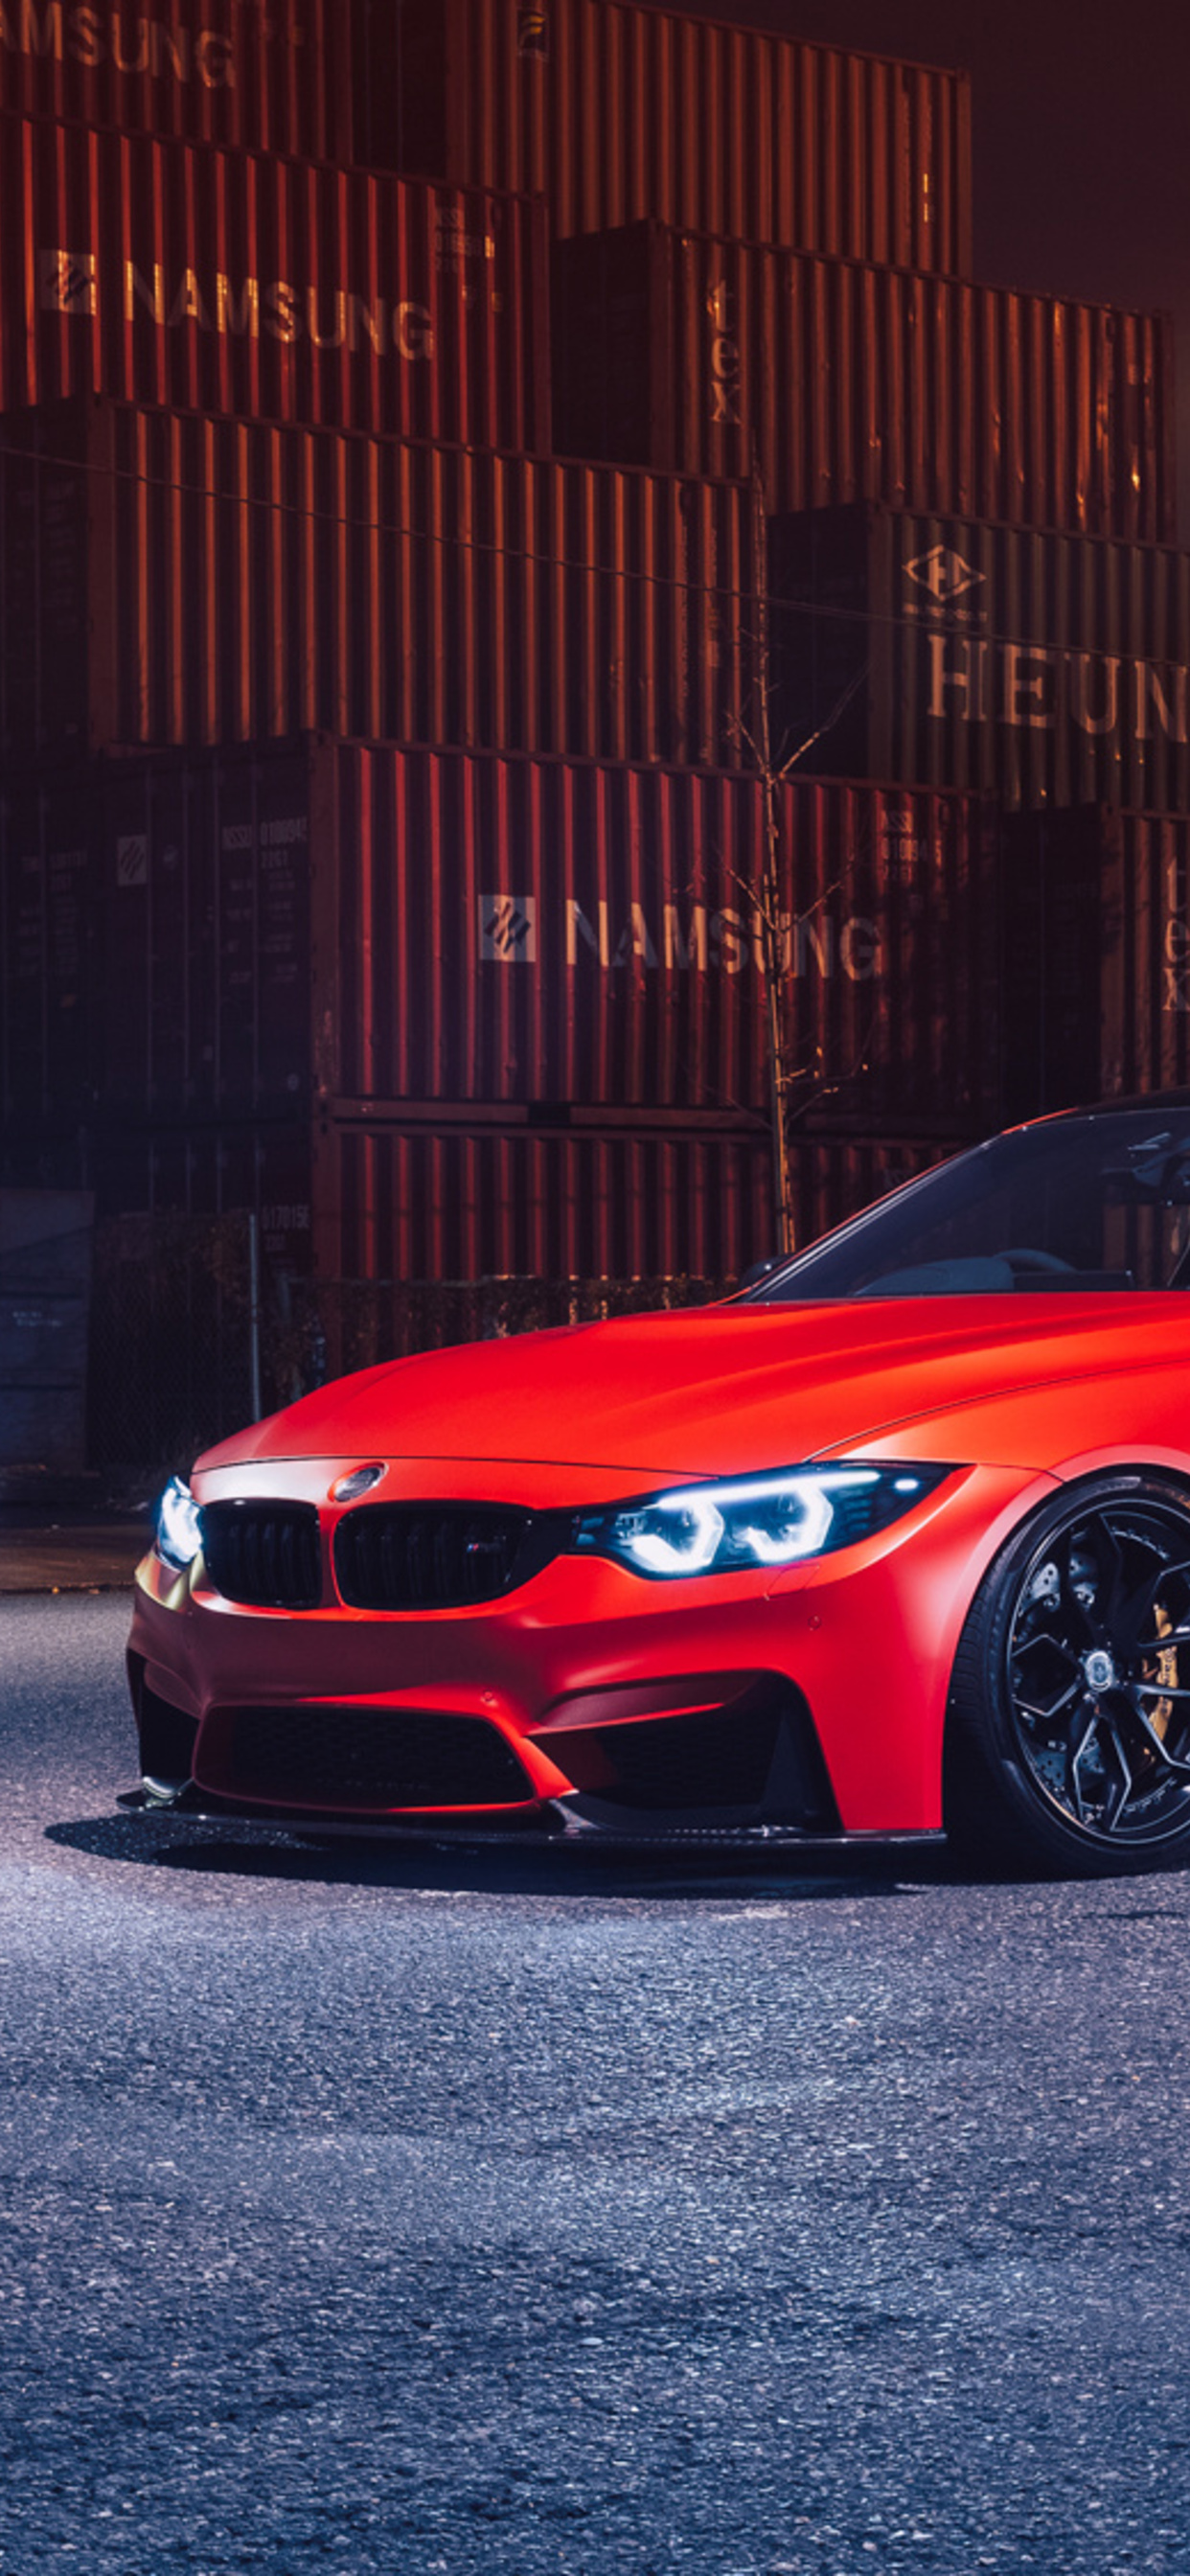 Bmw M4 Wallpaper Iphone Xs Max